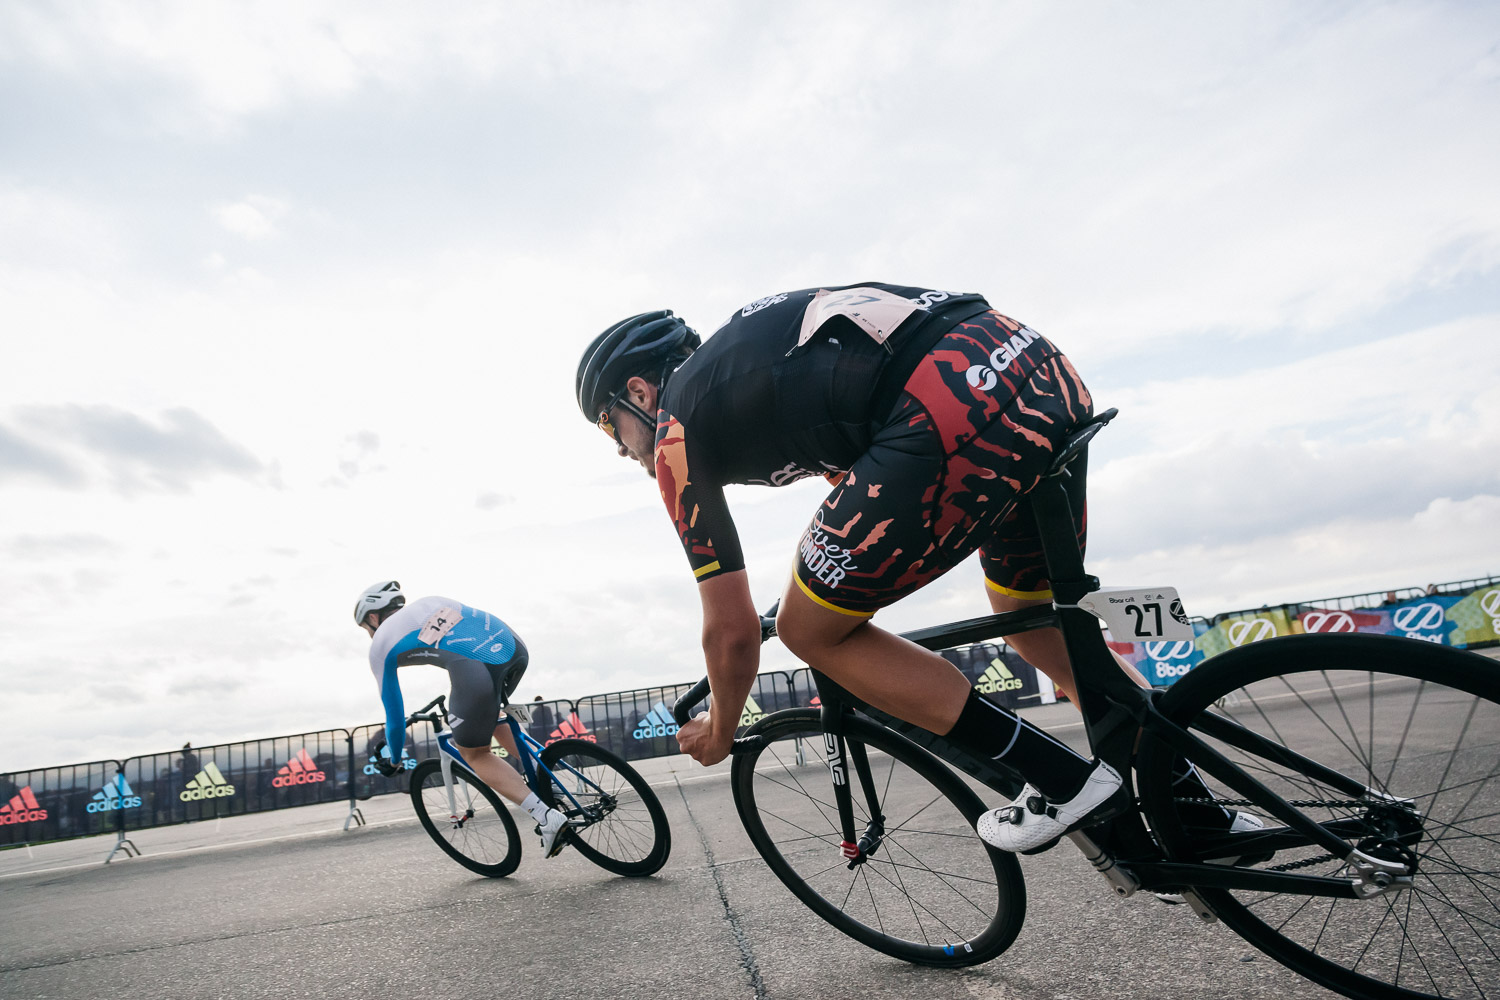 8bar-crit-fixed-gear-bike-race-stefanhaehnel-men-fxd-final-25